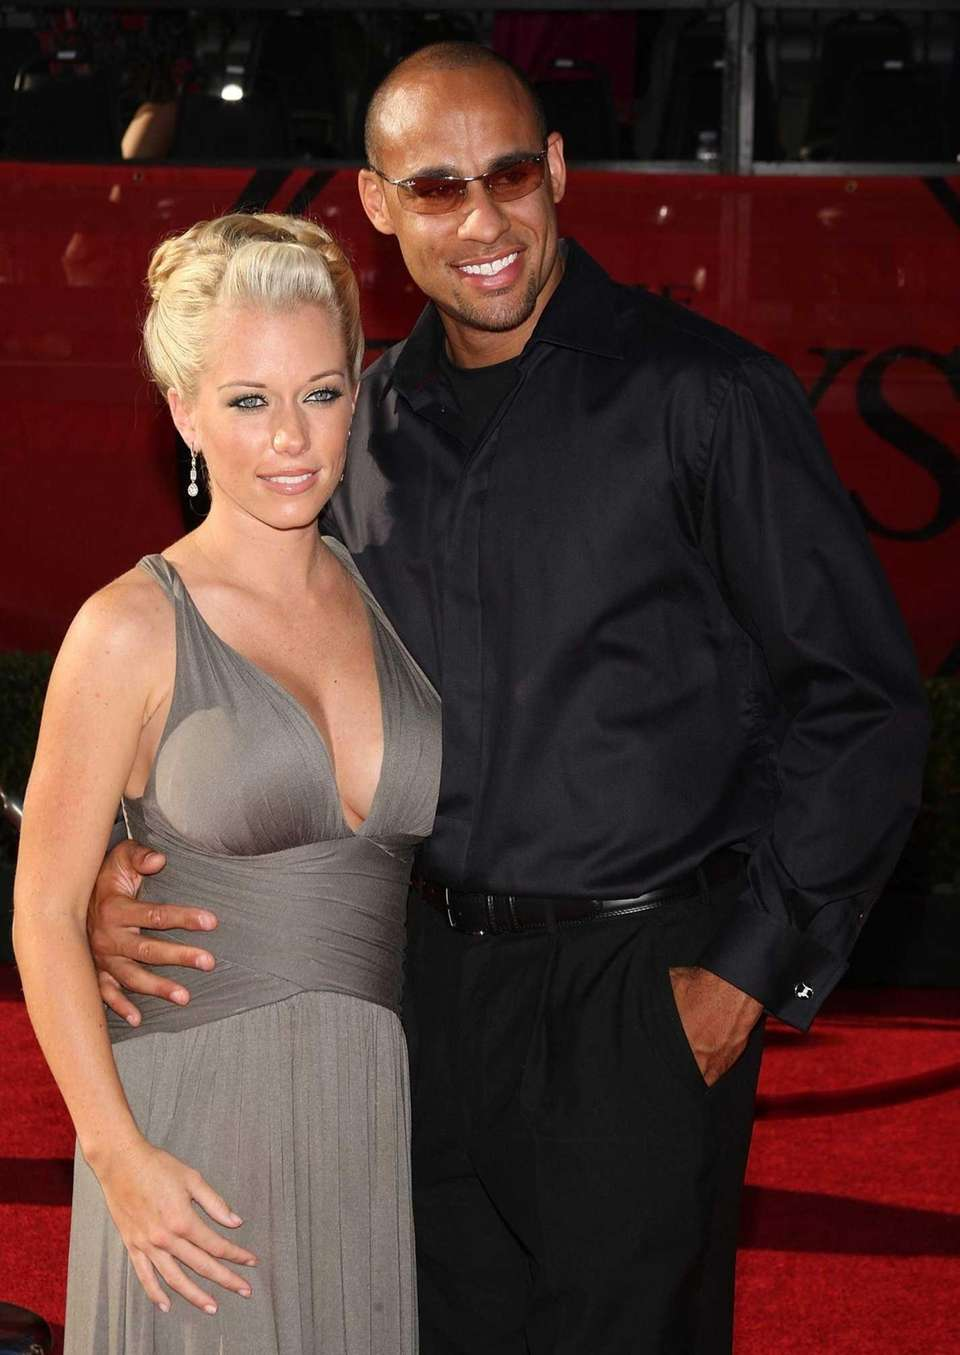 Kendra Wilkinson moved out of the Playboy mansion